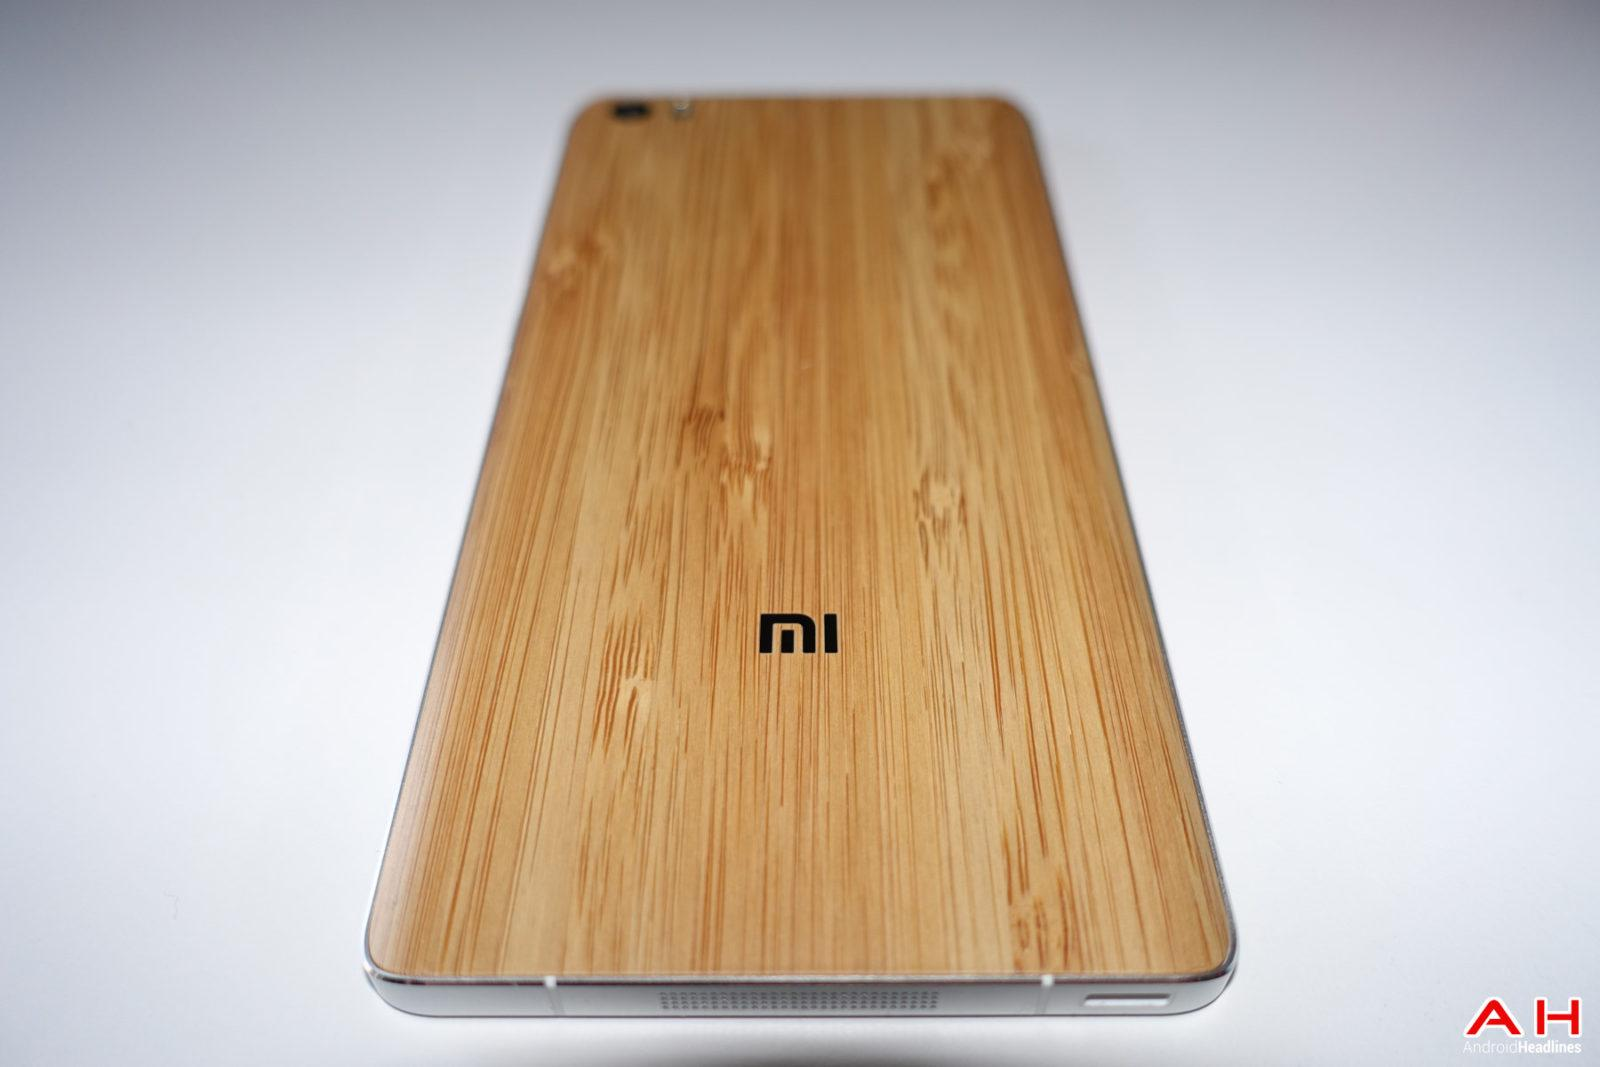 AH-Xiaomi-Note-Bamboo-Logo-June-30-Series-2-13-1600x1067